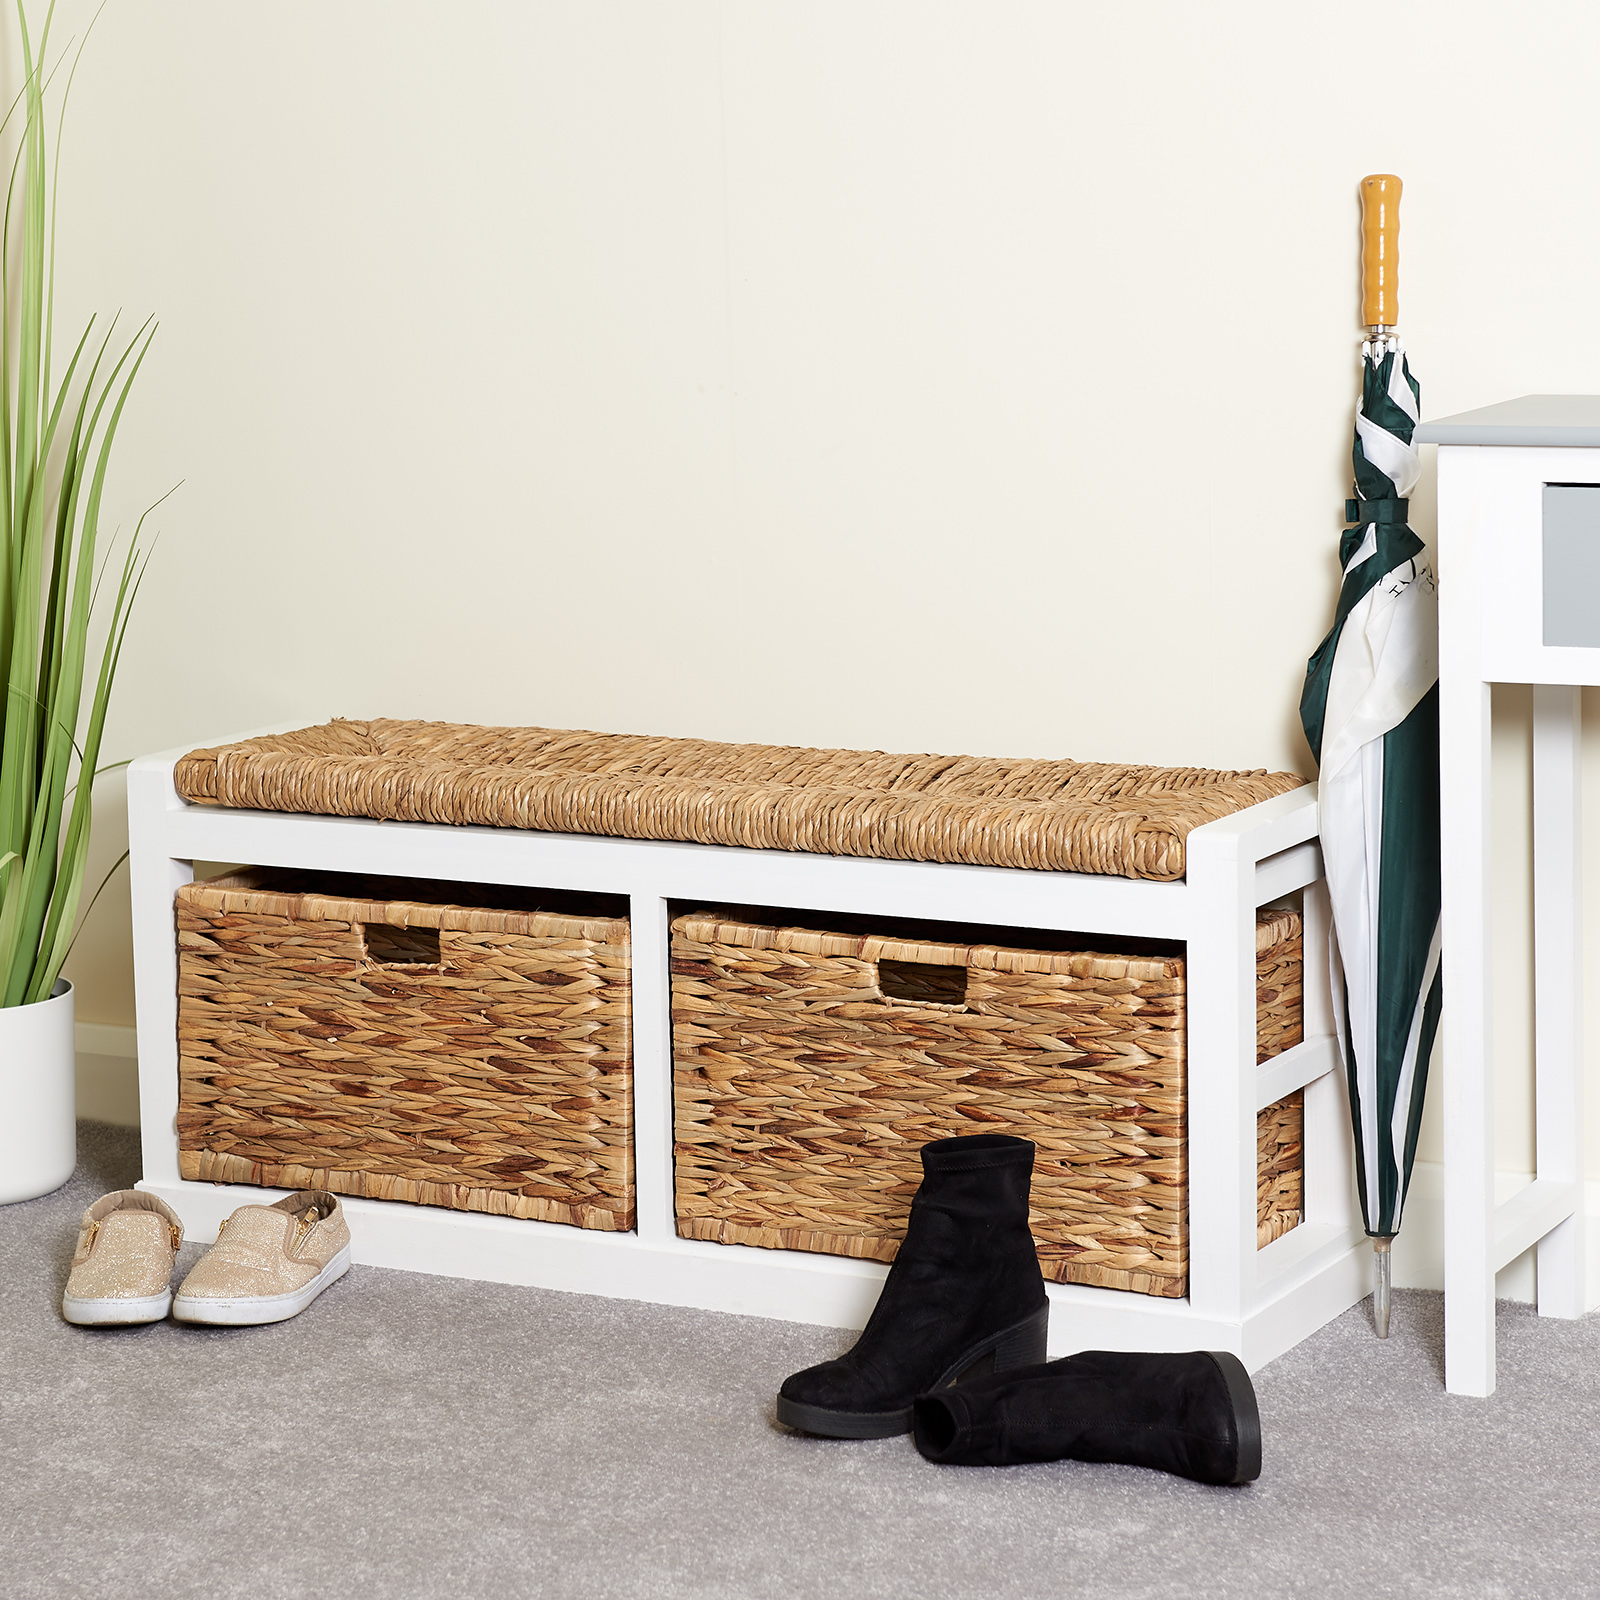 Superb Details About Hartleys Extra Wide 2 Drawer Hallway Storage Bench Wicker Seat Cushion Basket Pdpeps Interior Chair Design Pdpepsorg